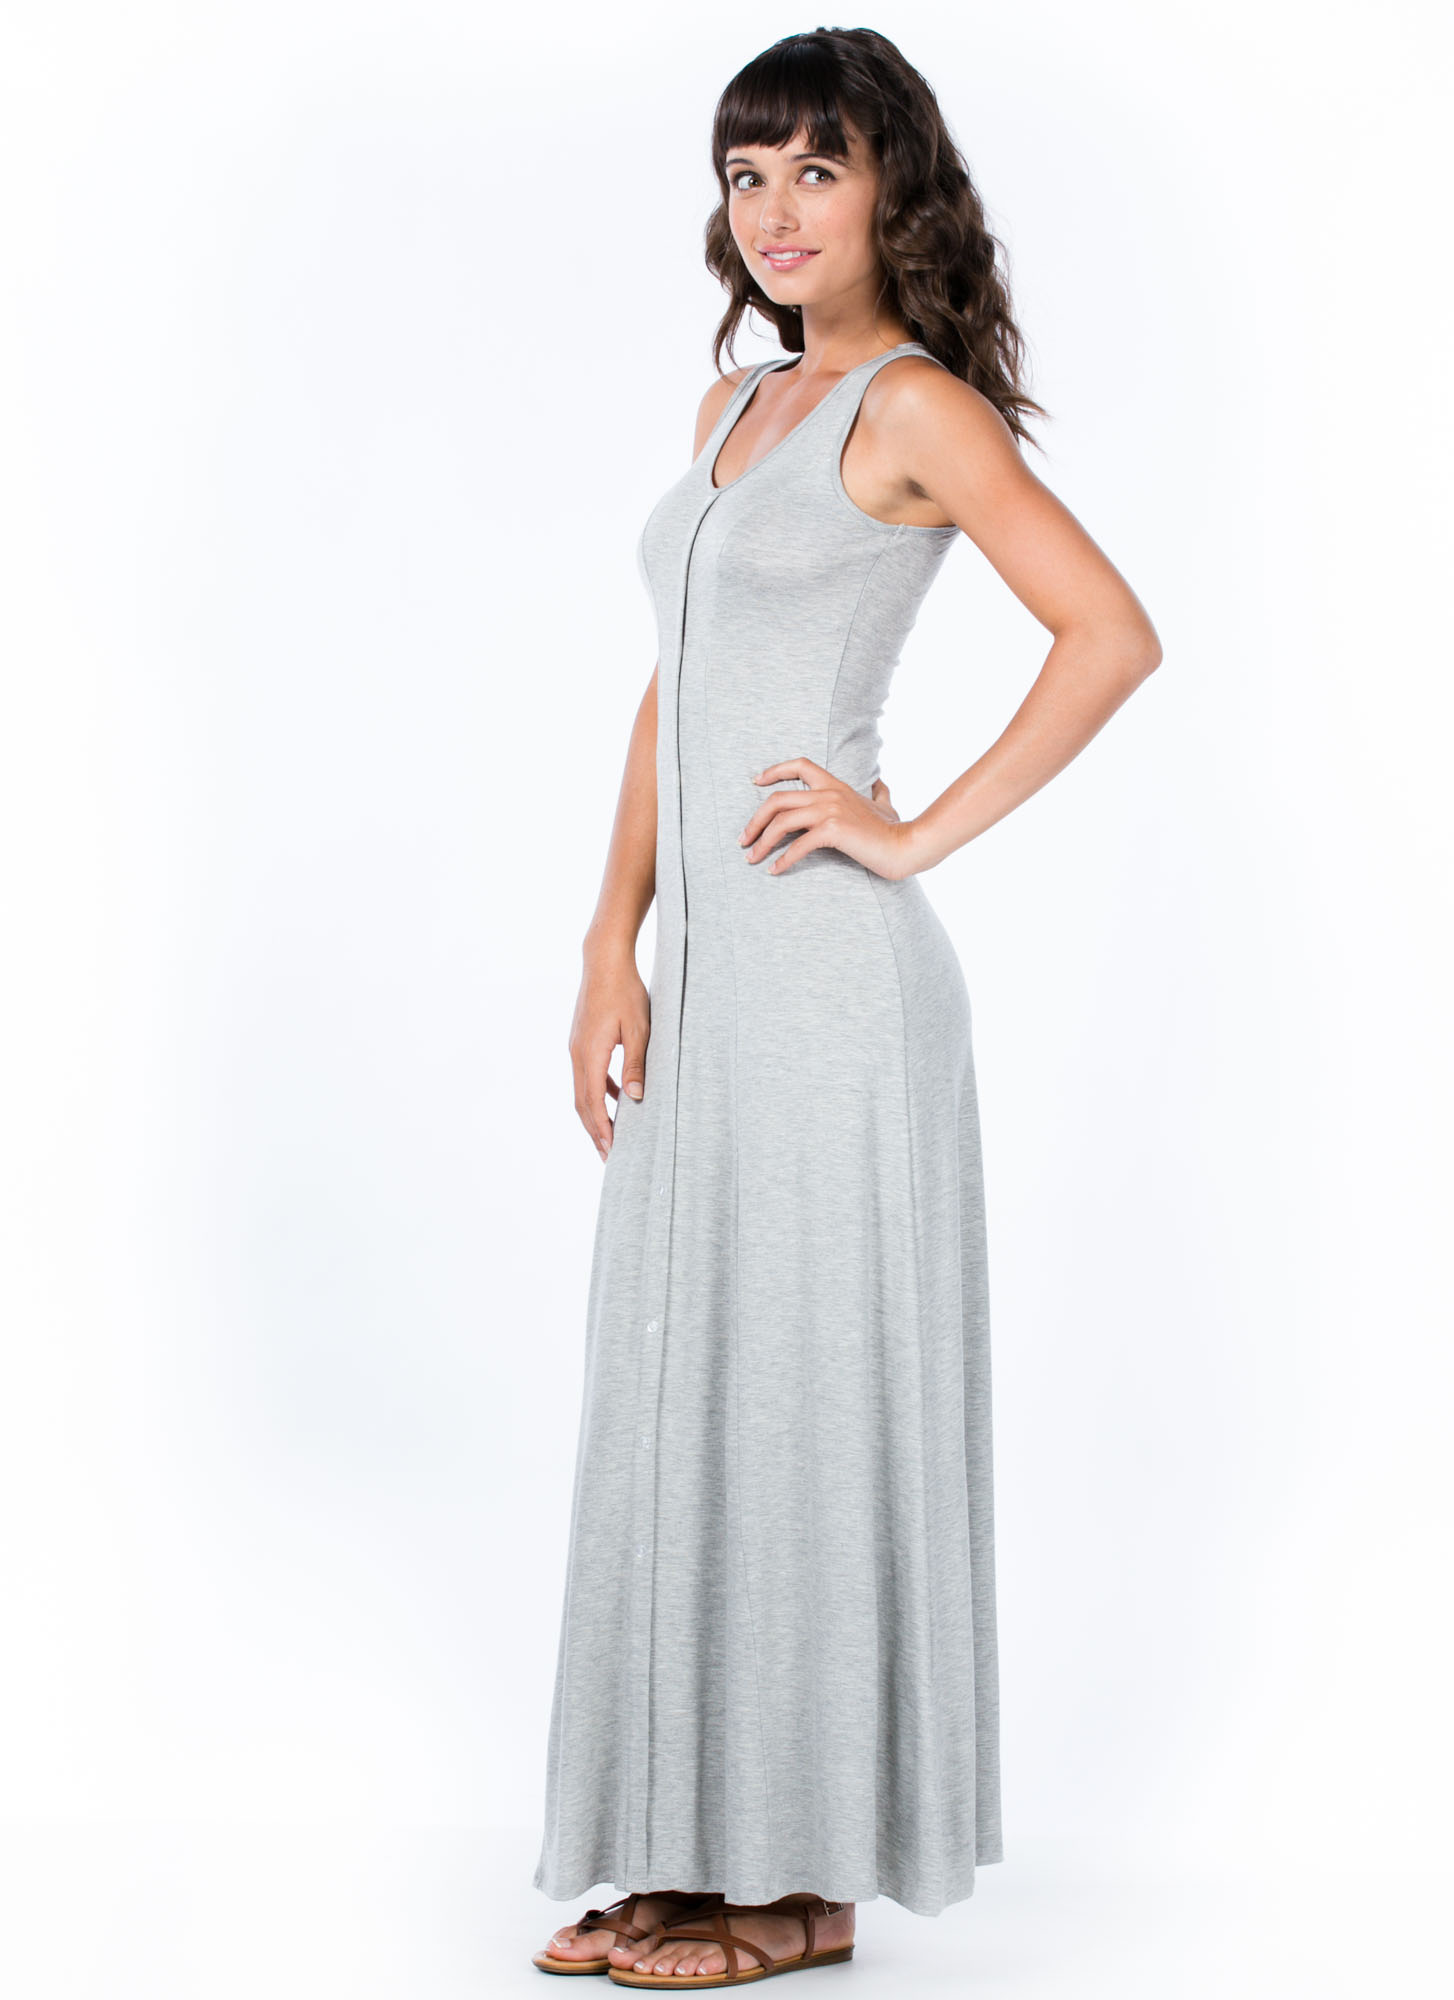 Button It Up Maxi Dress HGREY